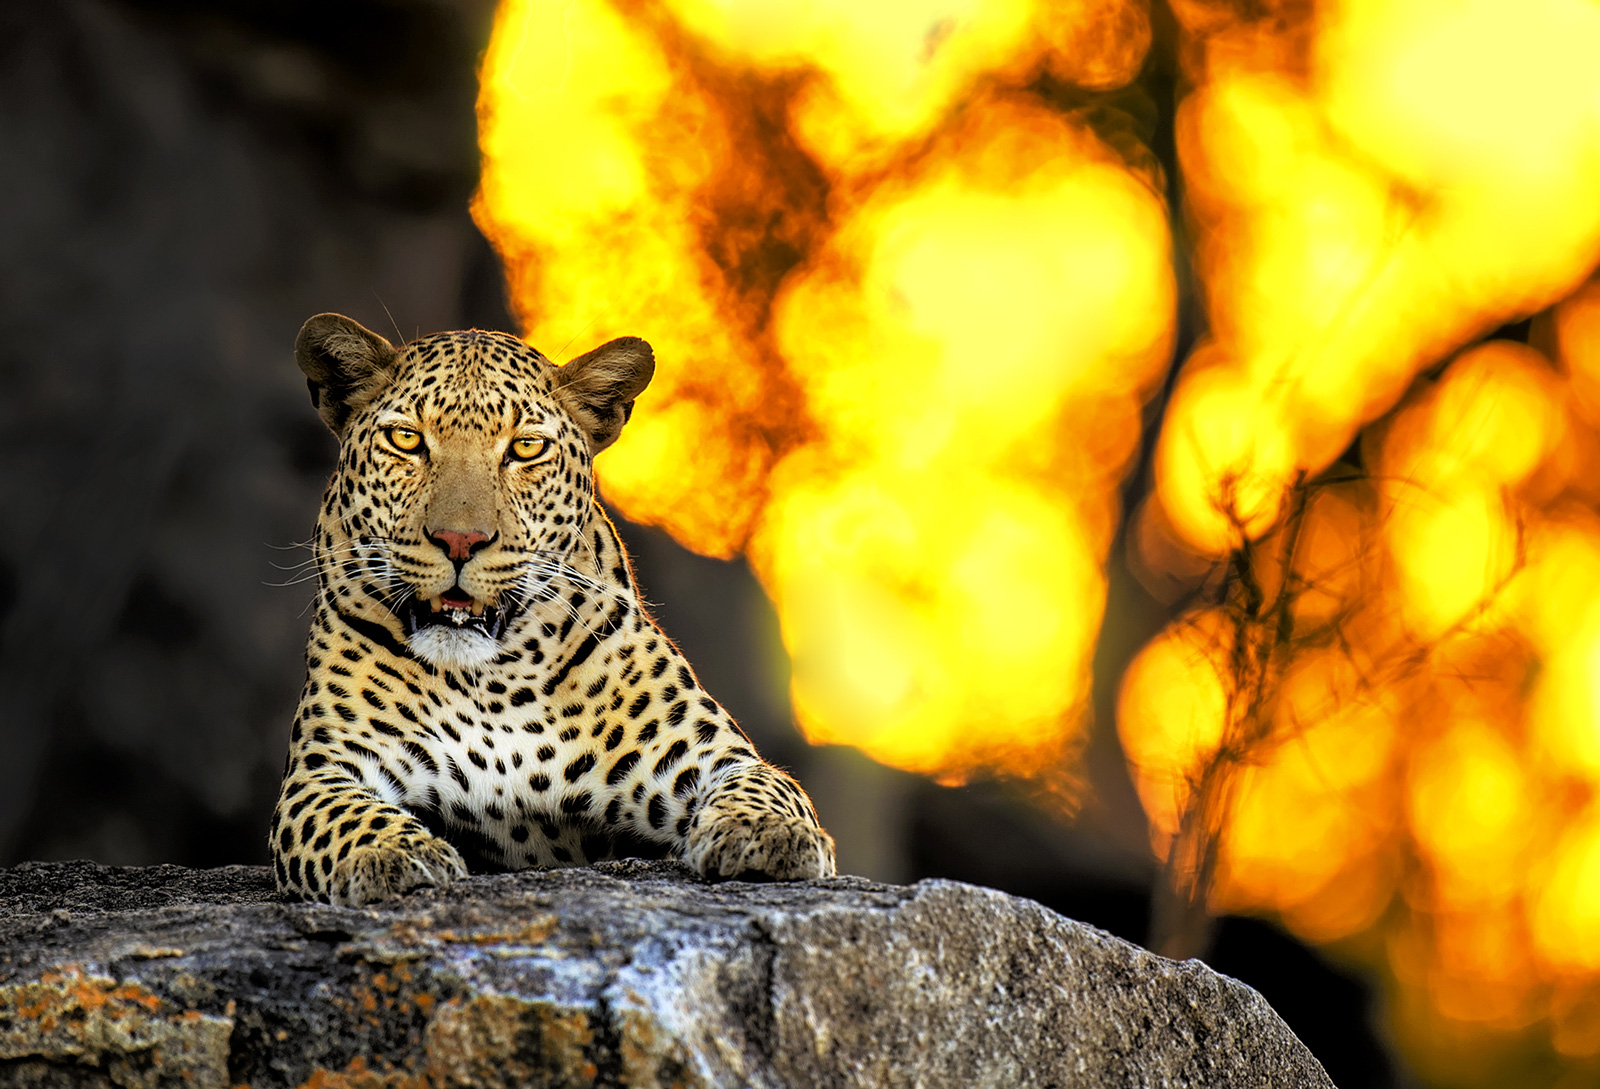 """Enflamed"" in Kruger National Park, South Africa ©Licnia Machado"